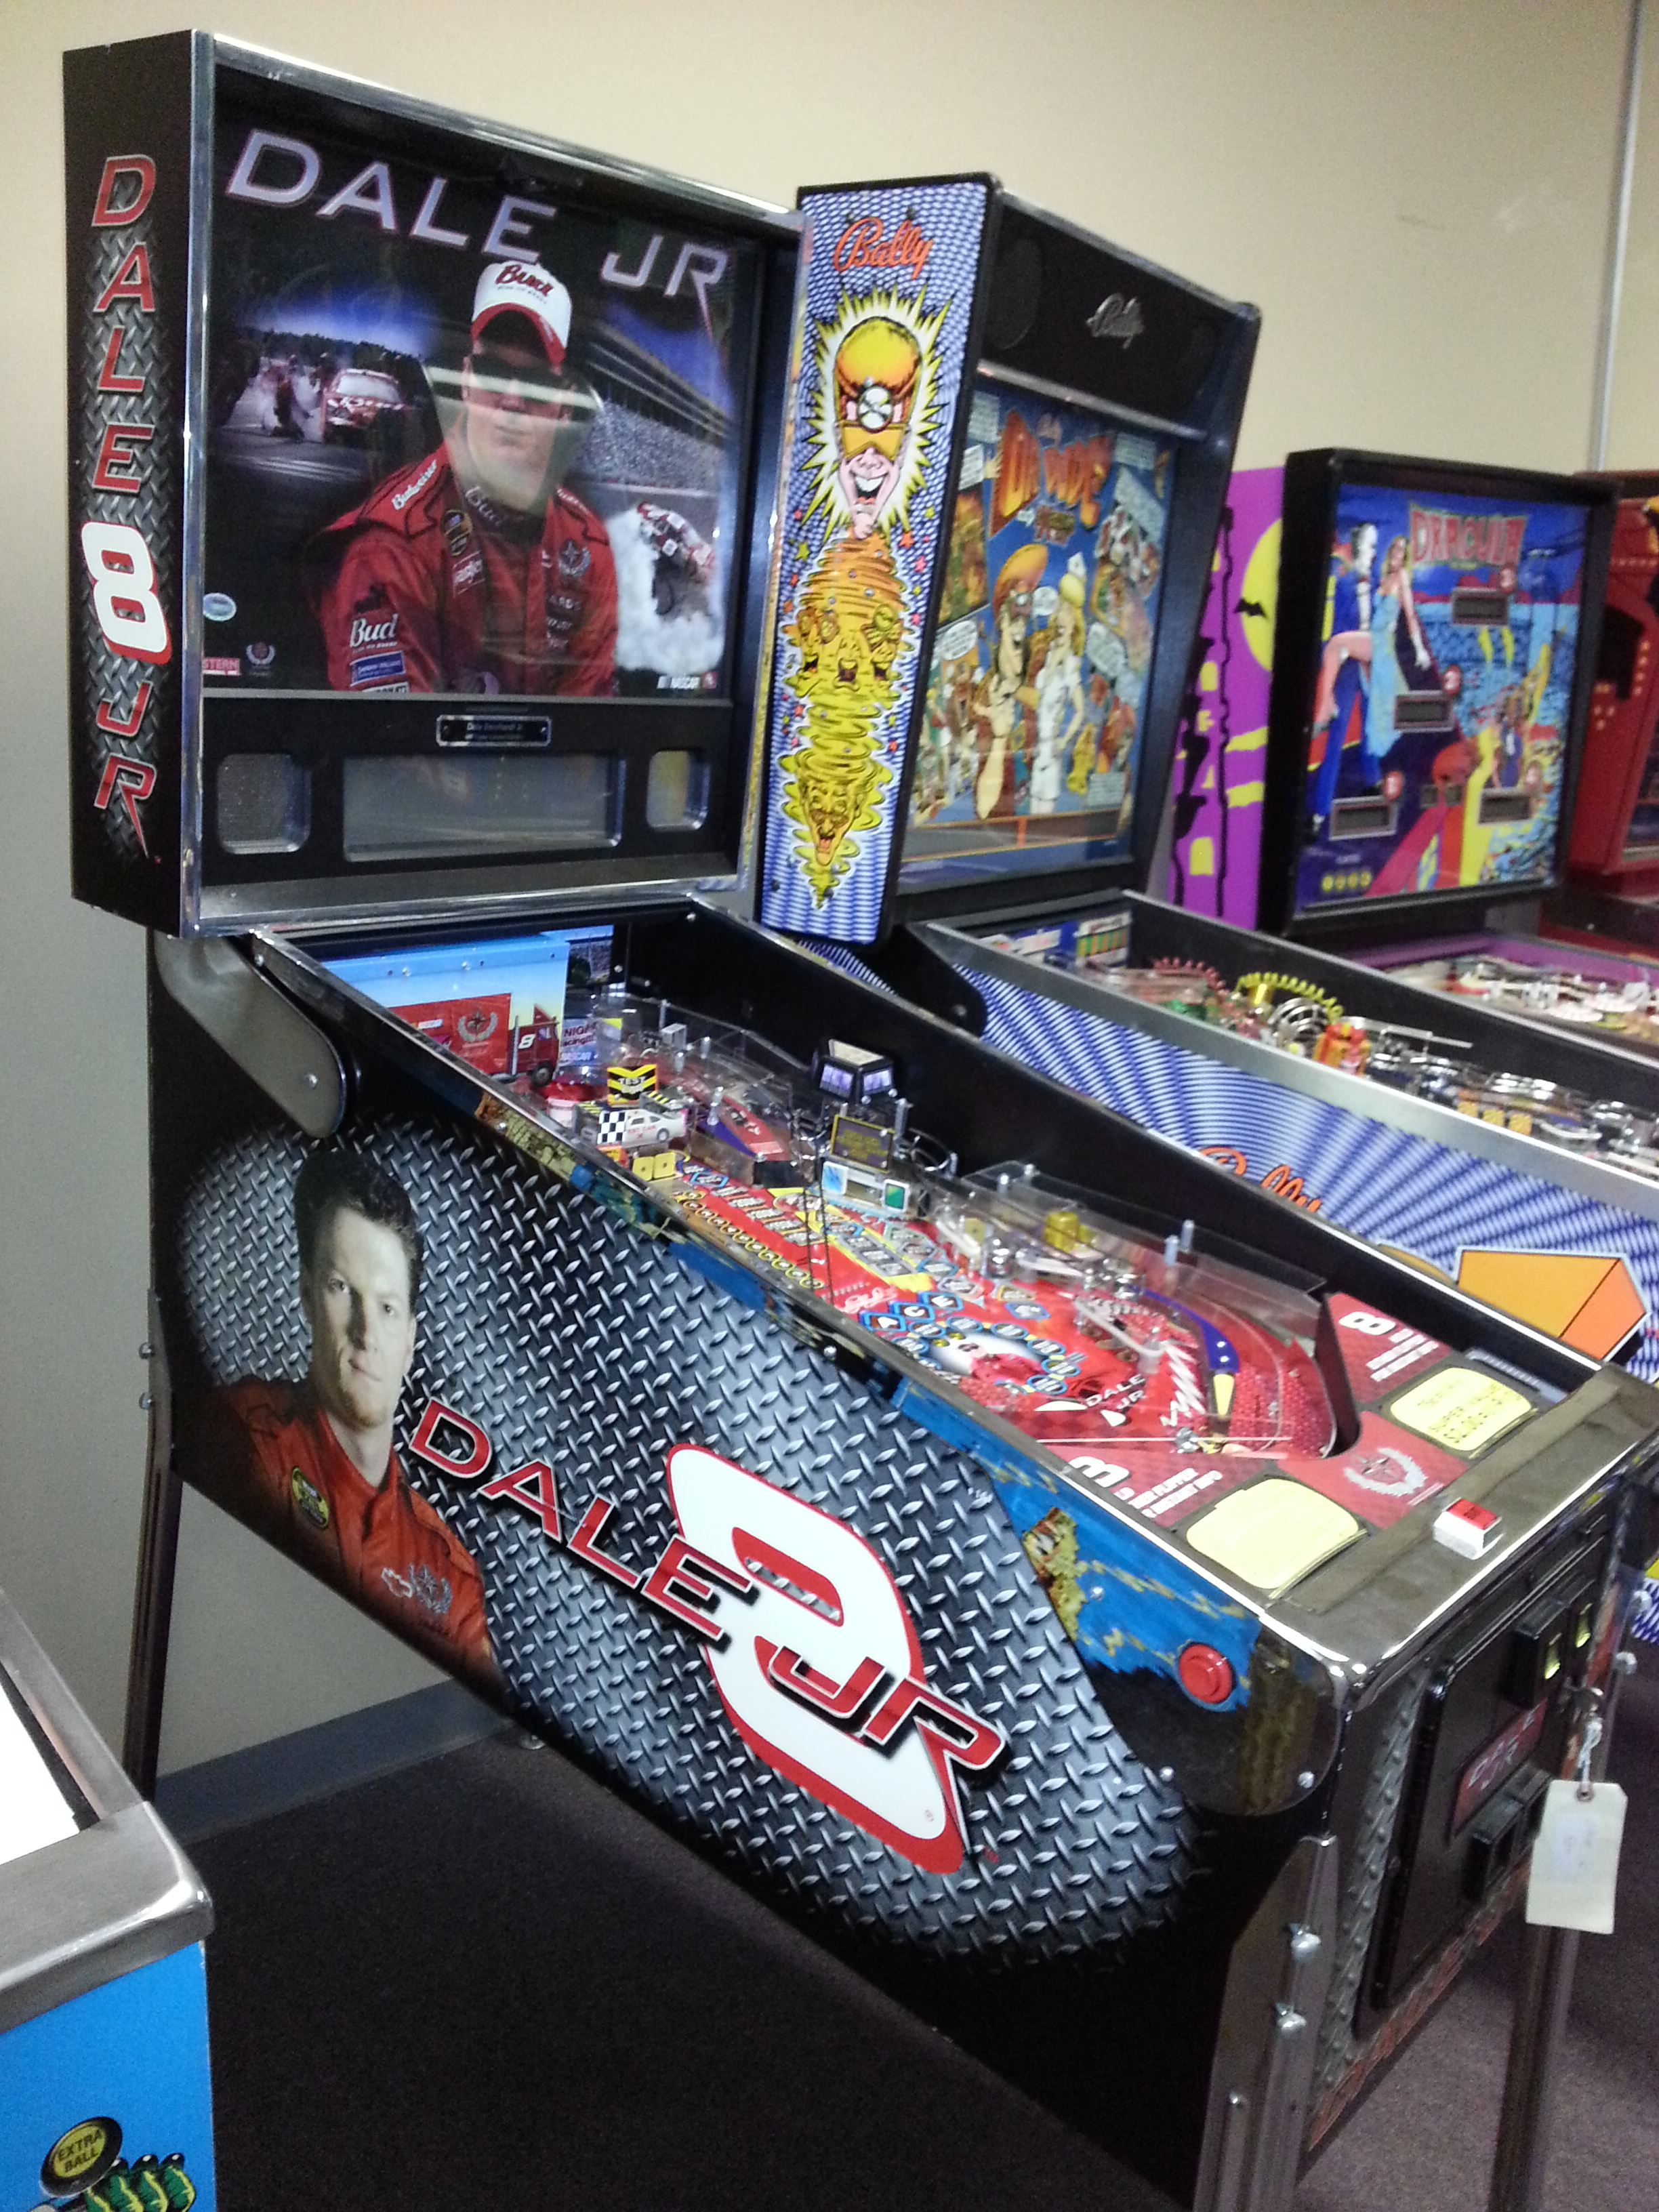 nascar dale earnhardt jr   8 pinball machine game for sale